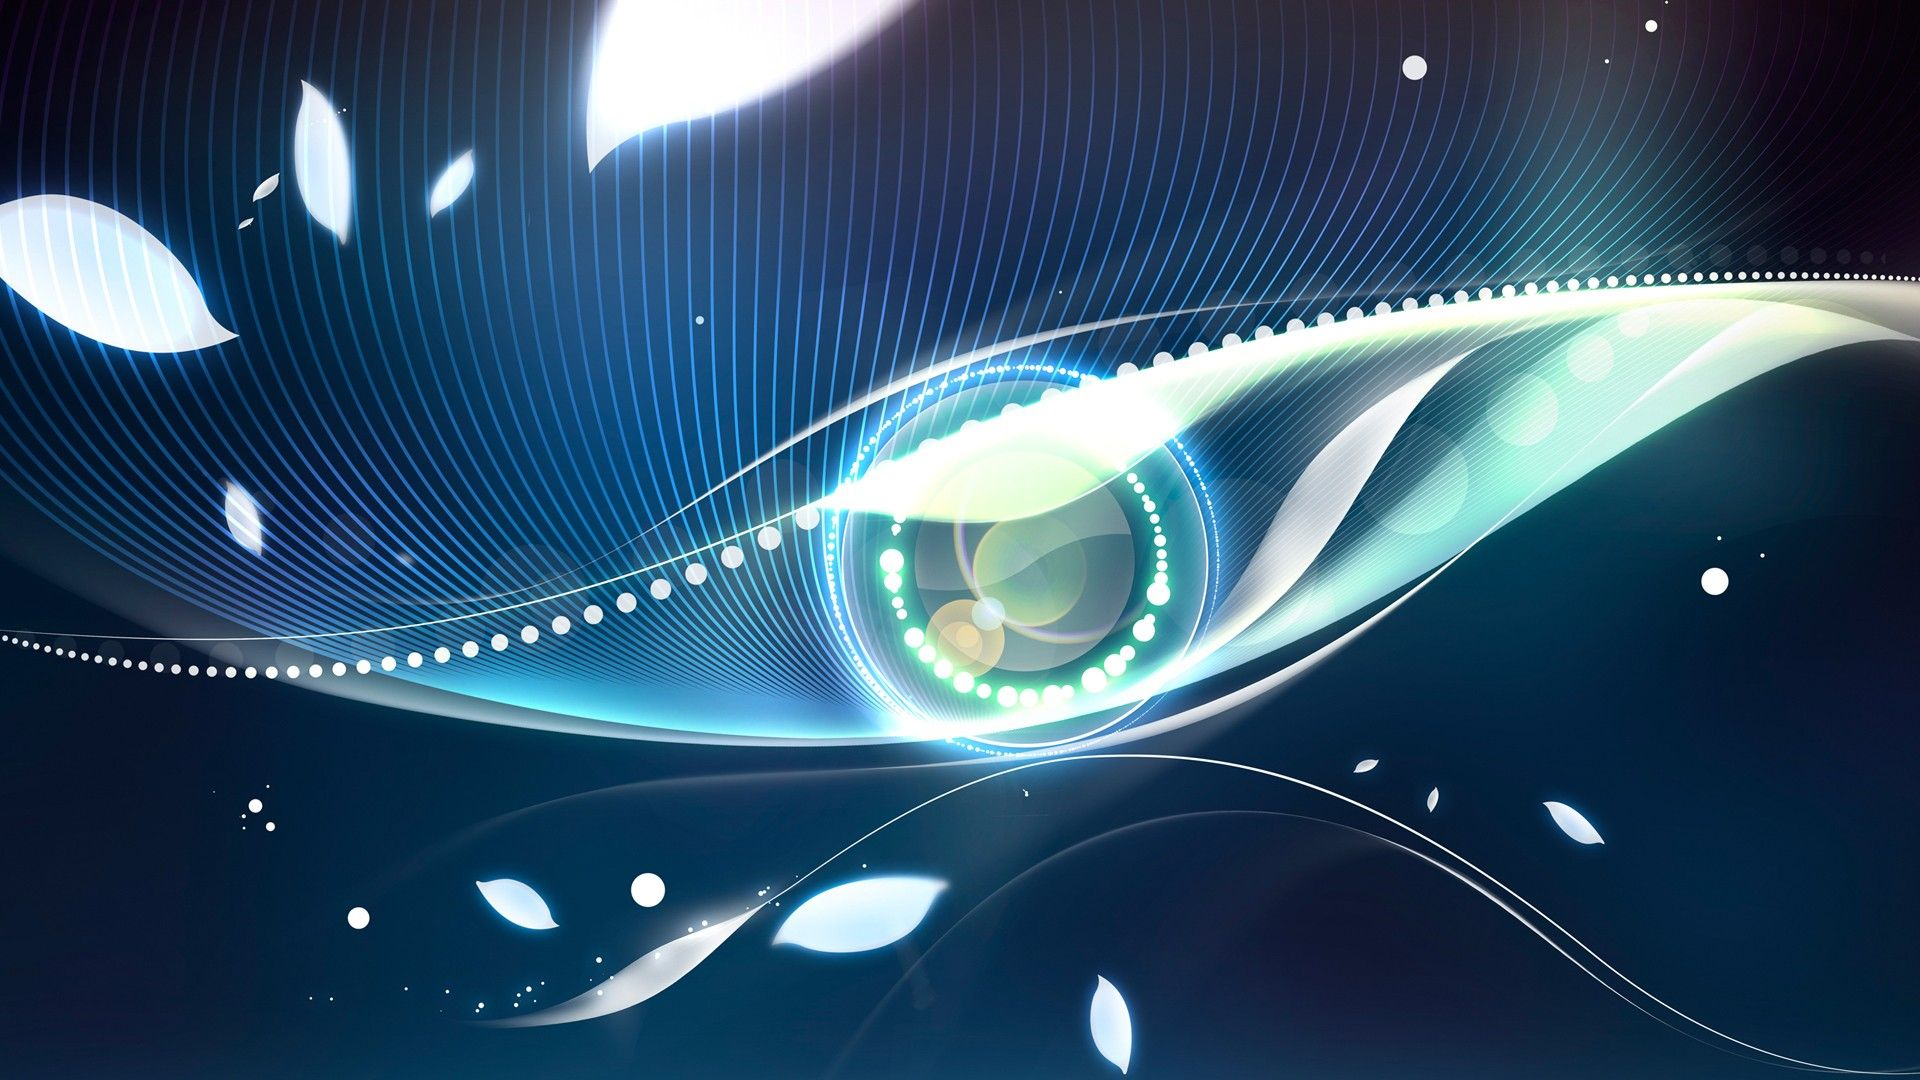 Vision Wallpaper By Martz On Deviantart Abstract Blue Abstract Abstract Wallpaper